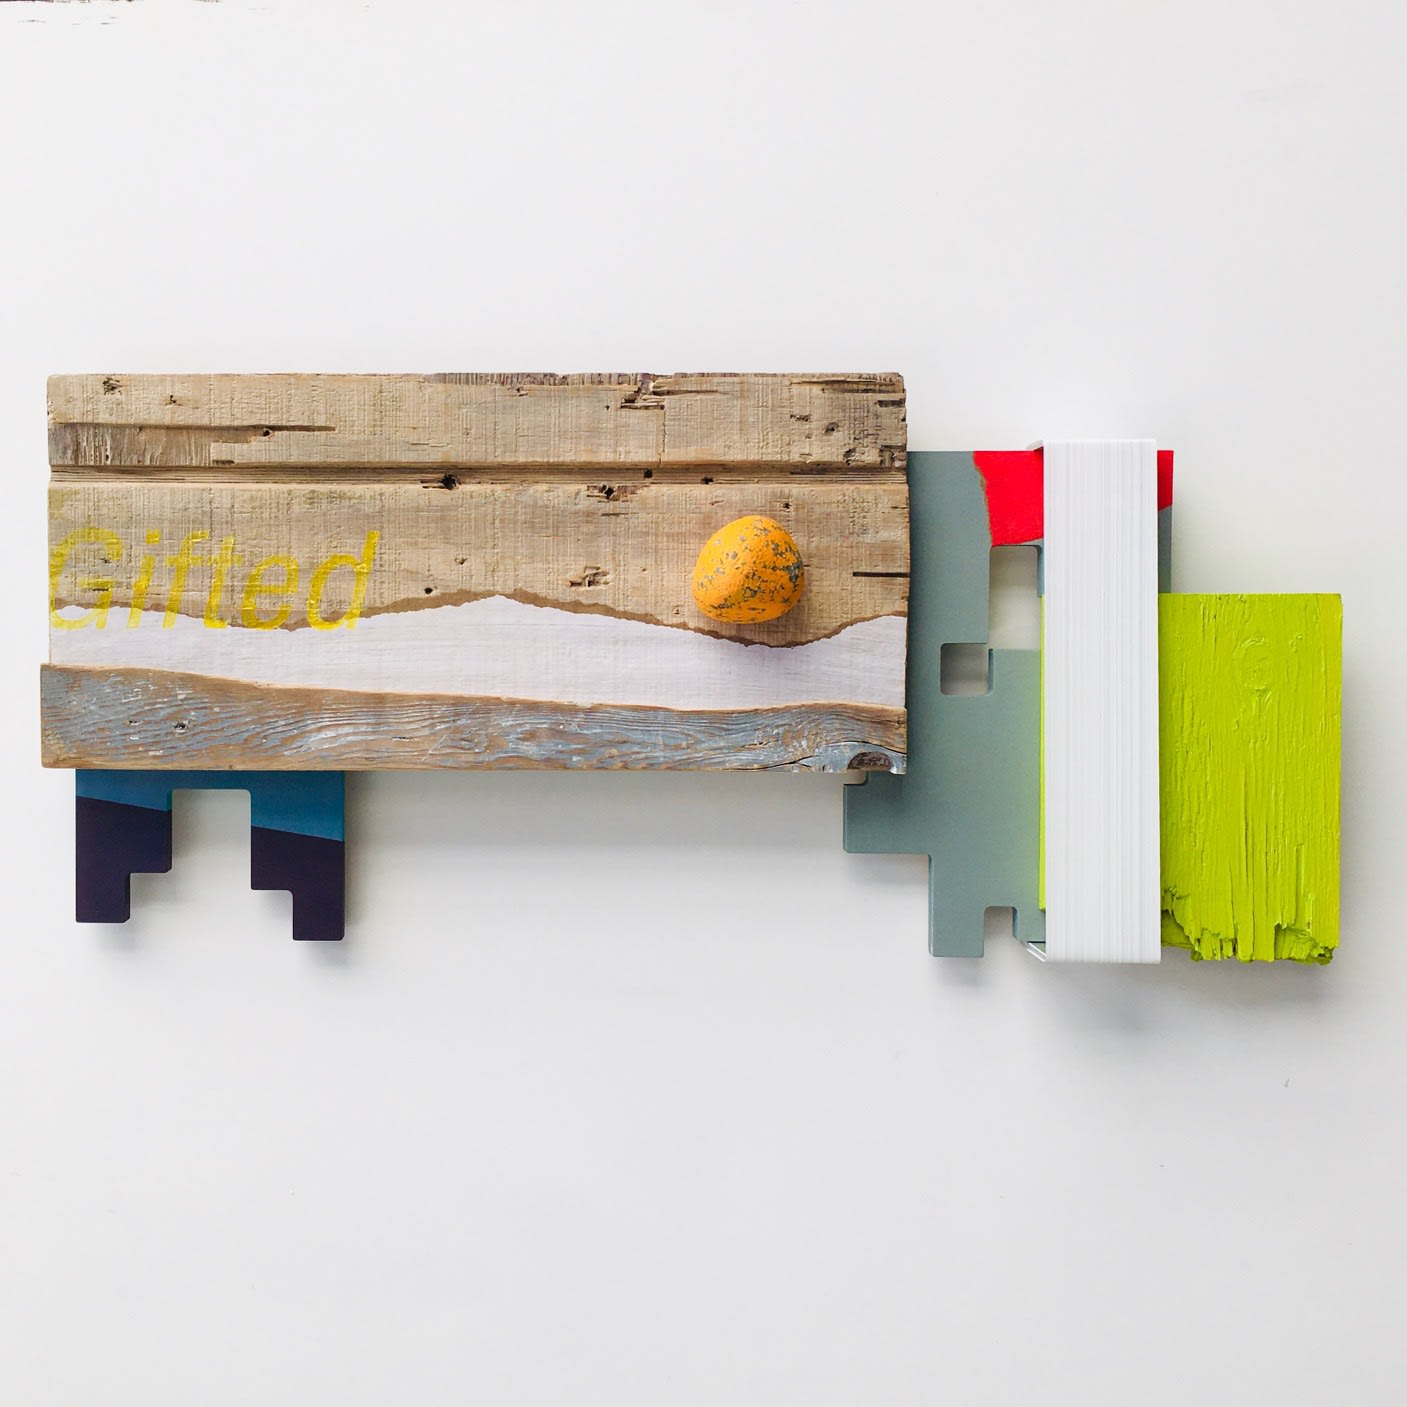 Andrés Ferrandis Gifted, 2020 Acrylic on wood, polyester, objet trouvé, a painted stone and aluminum 14 x 29 x 2.3